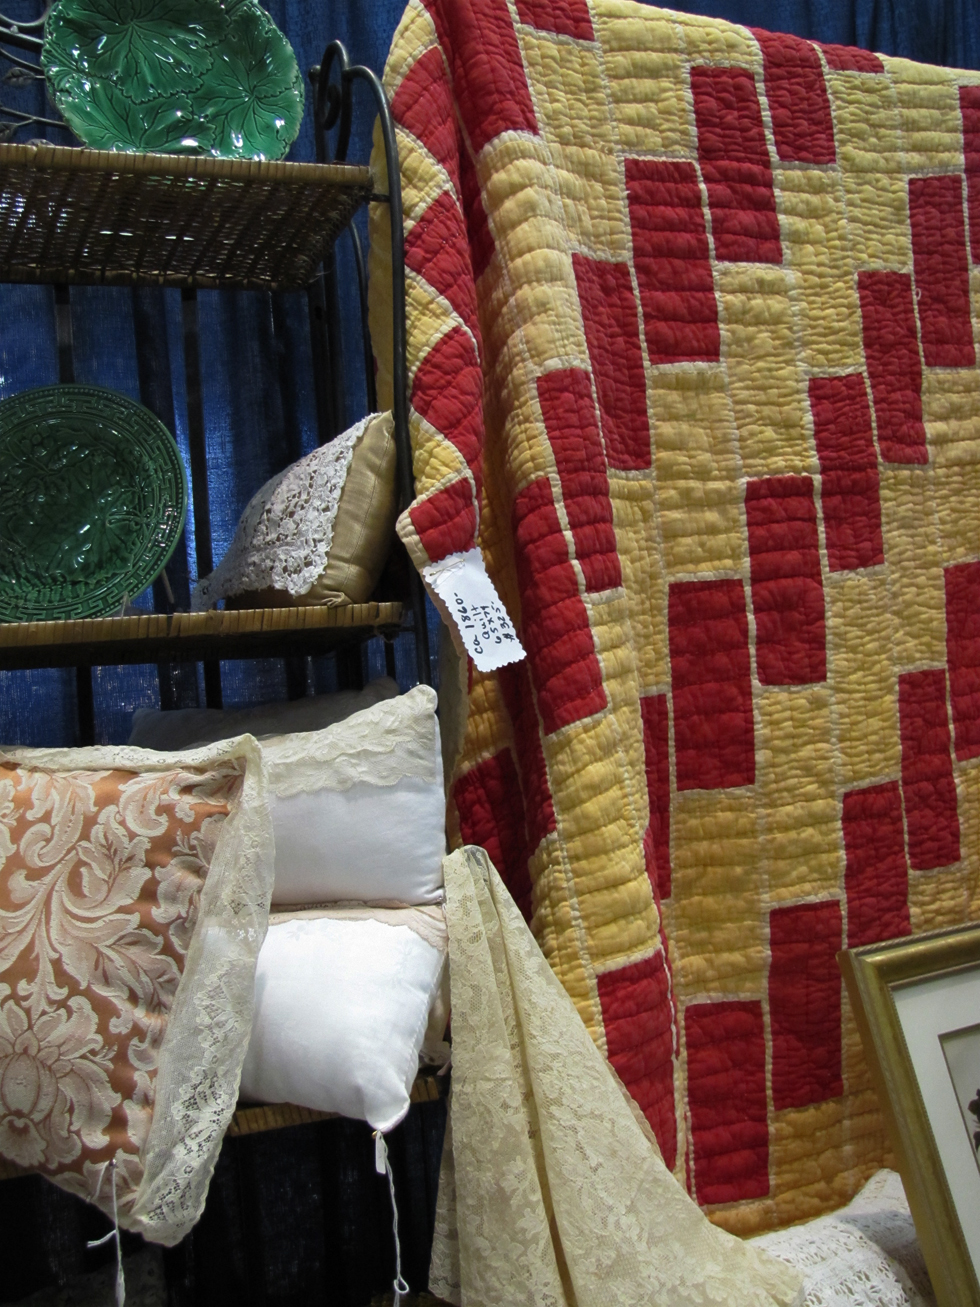 Vintage Quilt at Antique Show